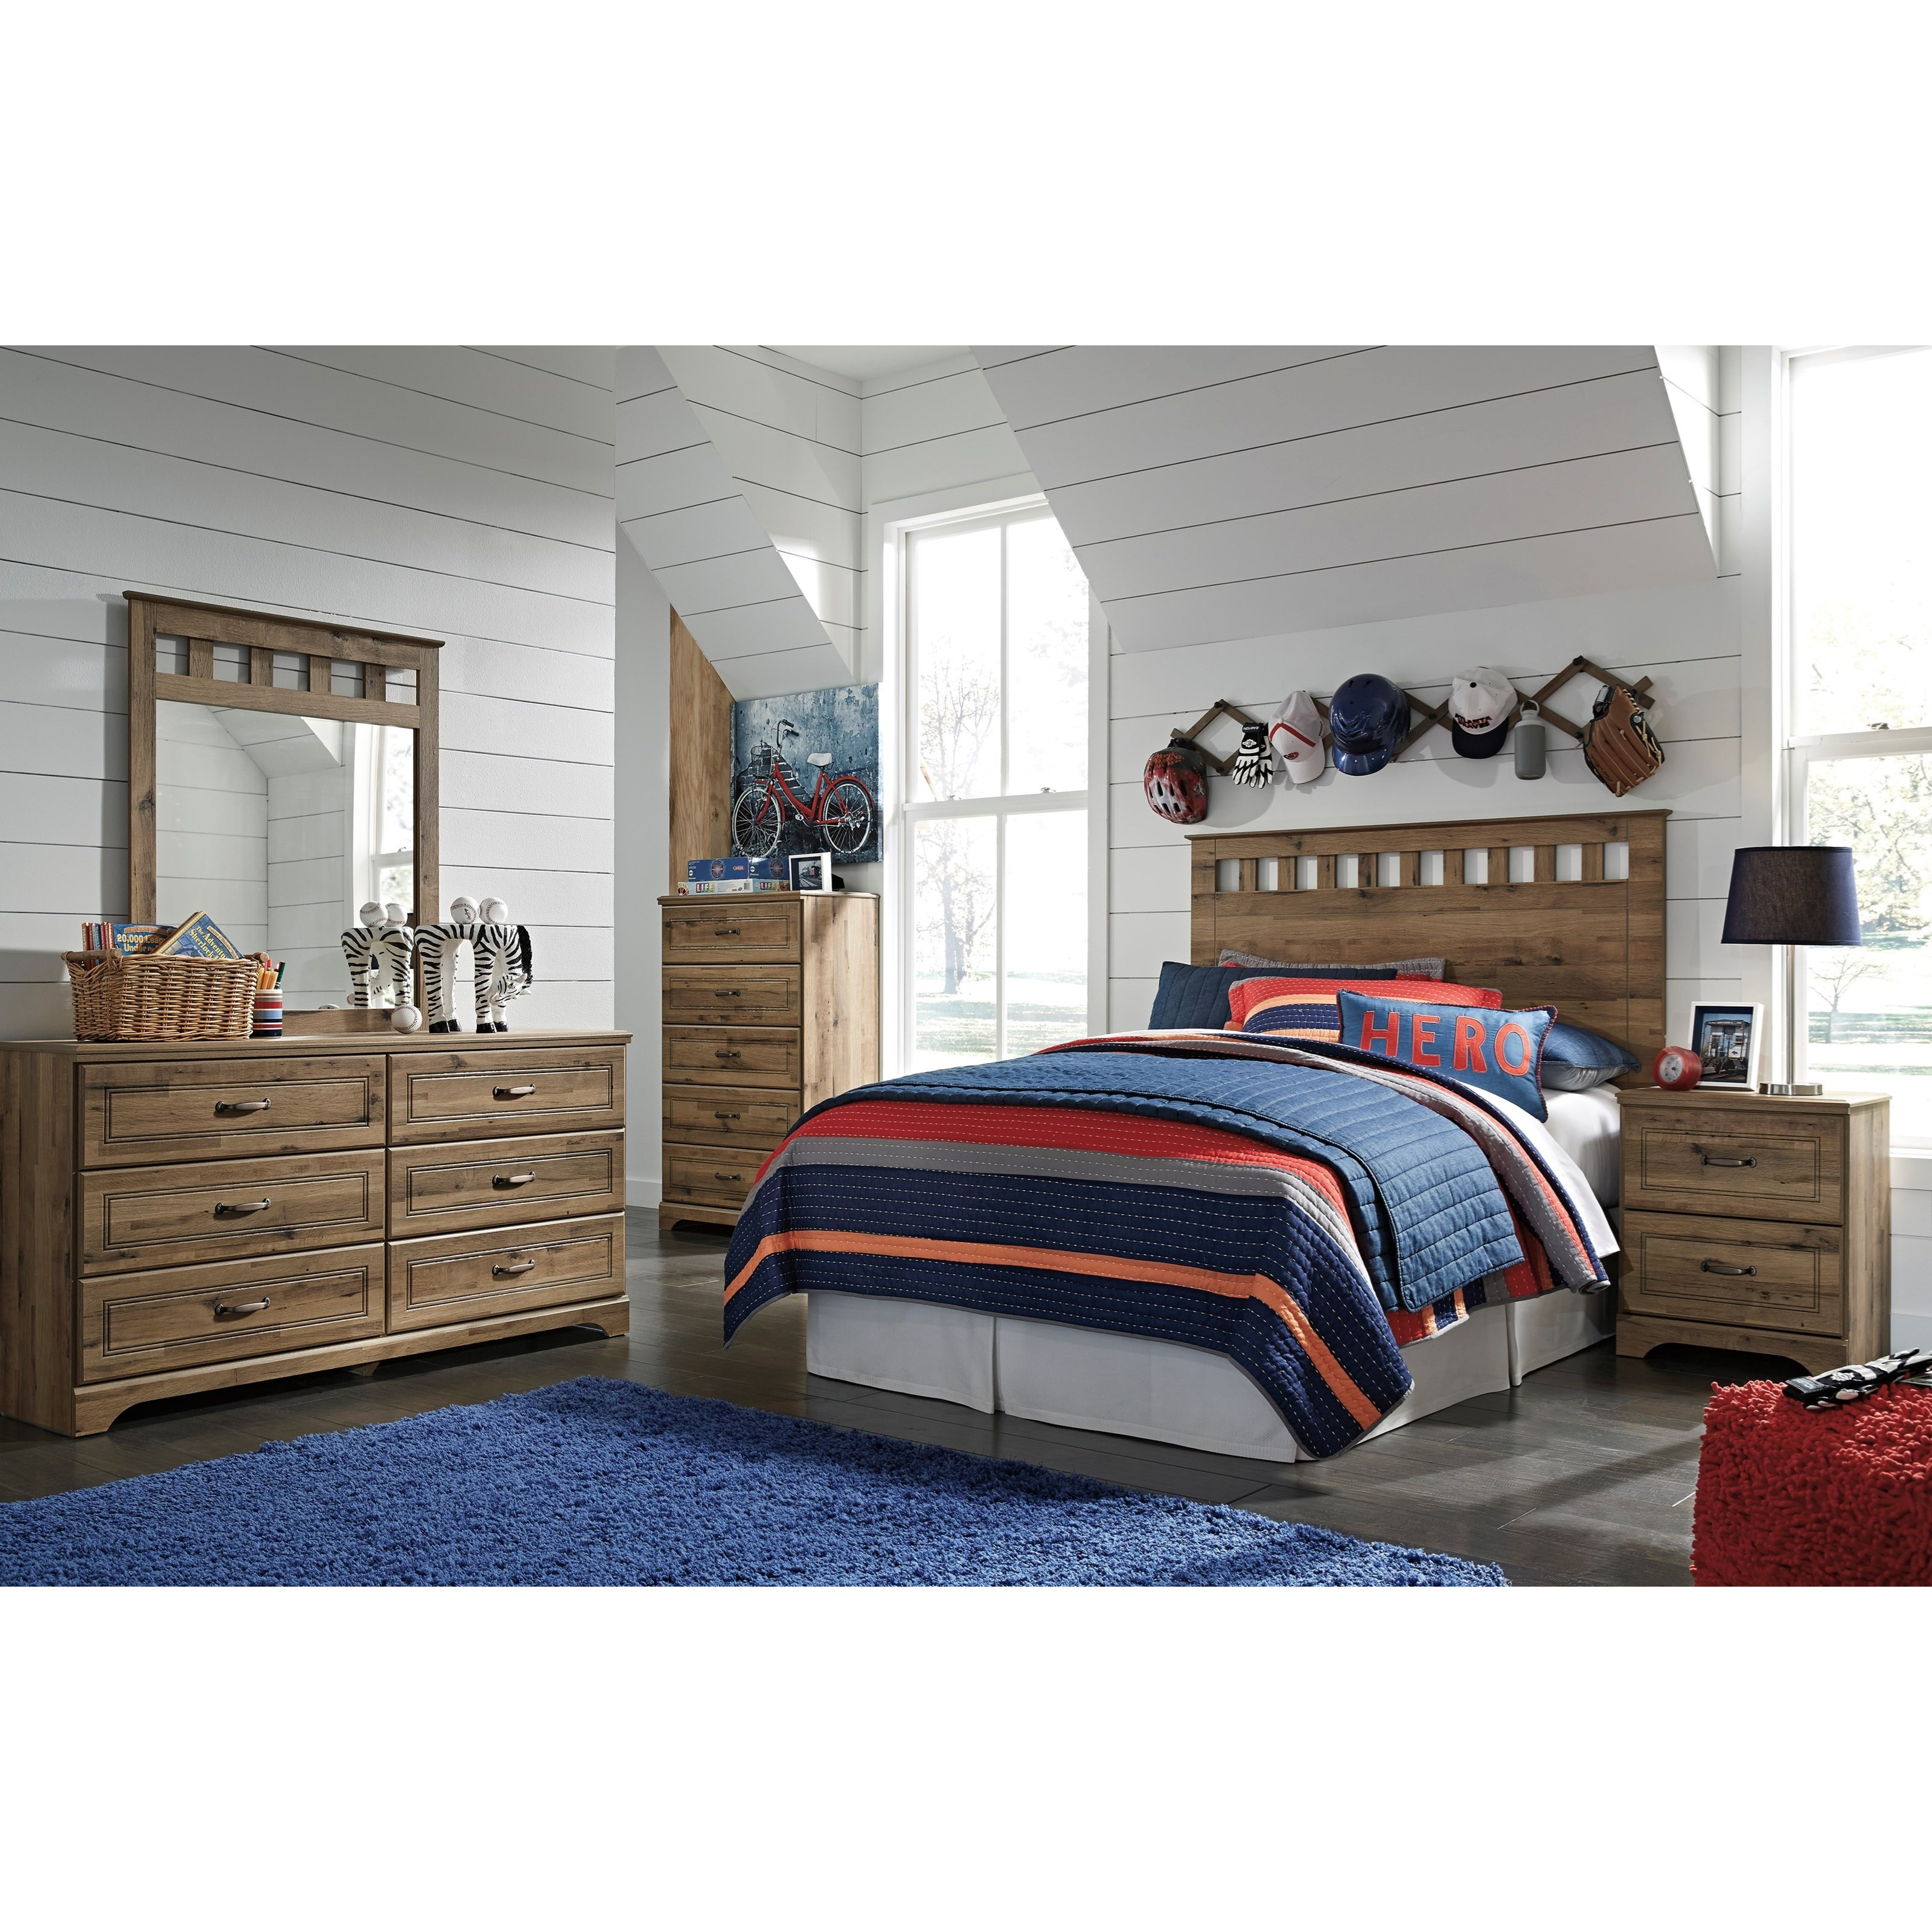 Signature Design by Ashley Brobern Full Bedroom Group